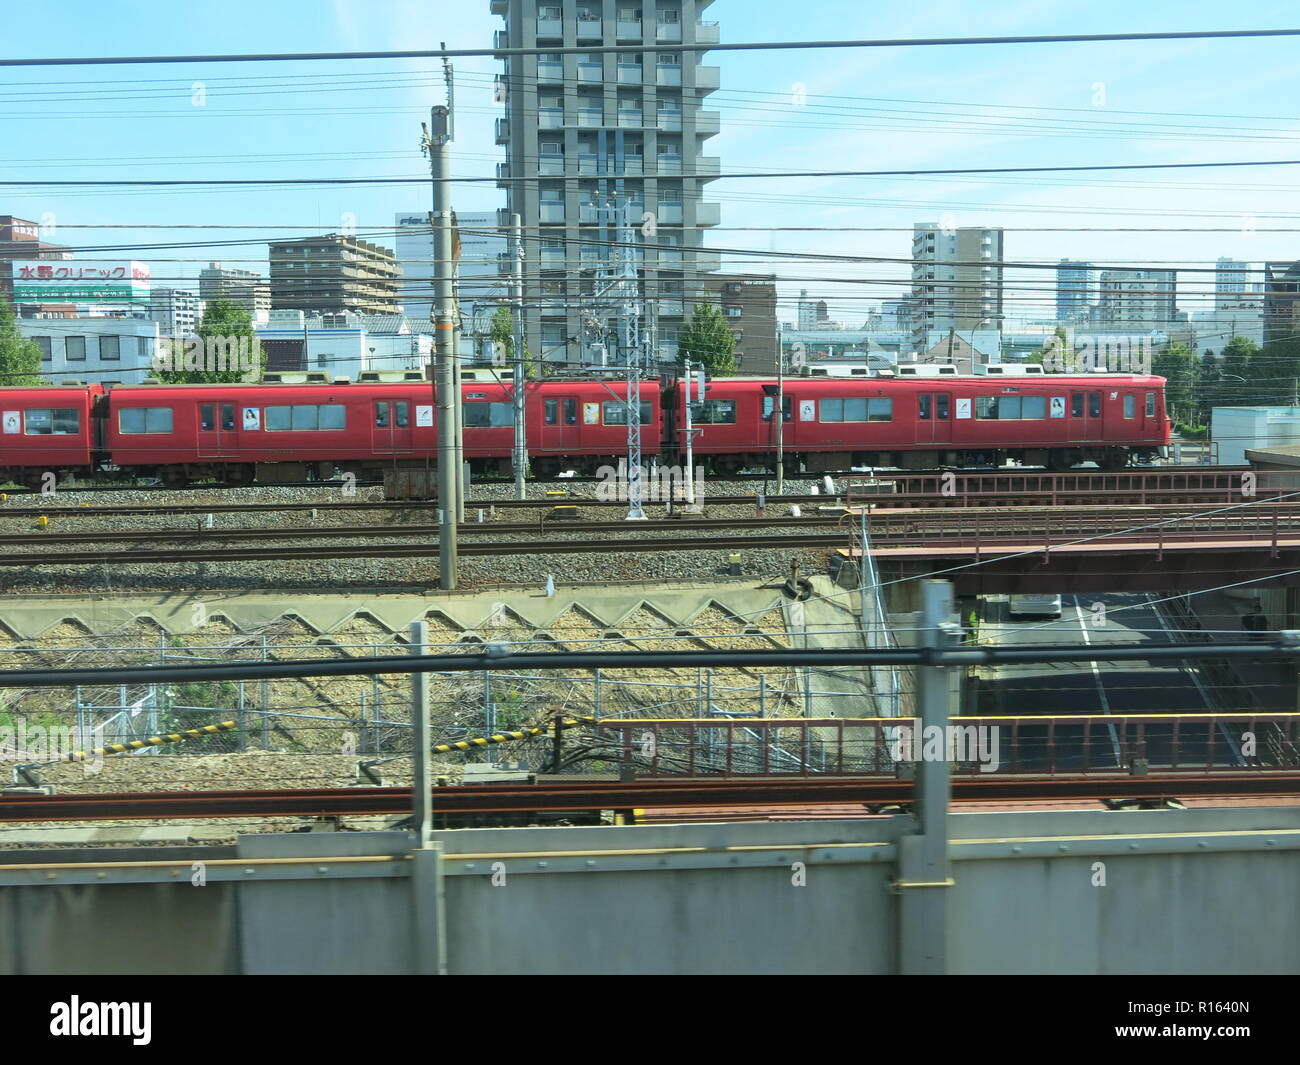 View of a red train on another line as we approach Nagoya station, central Japan - Stock Image